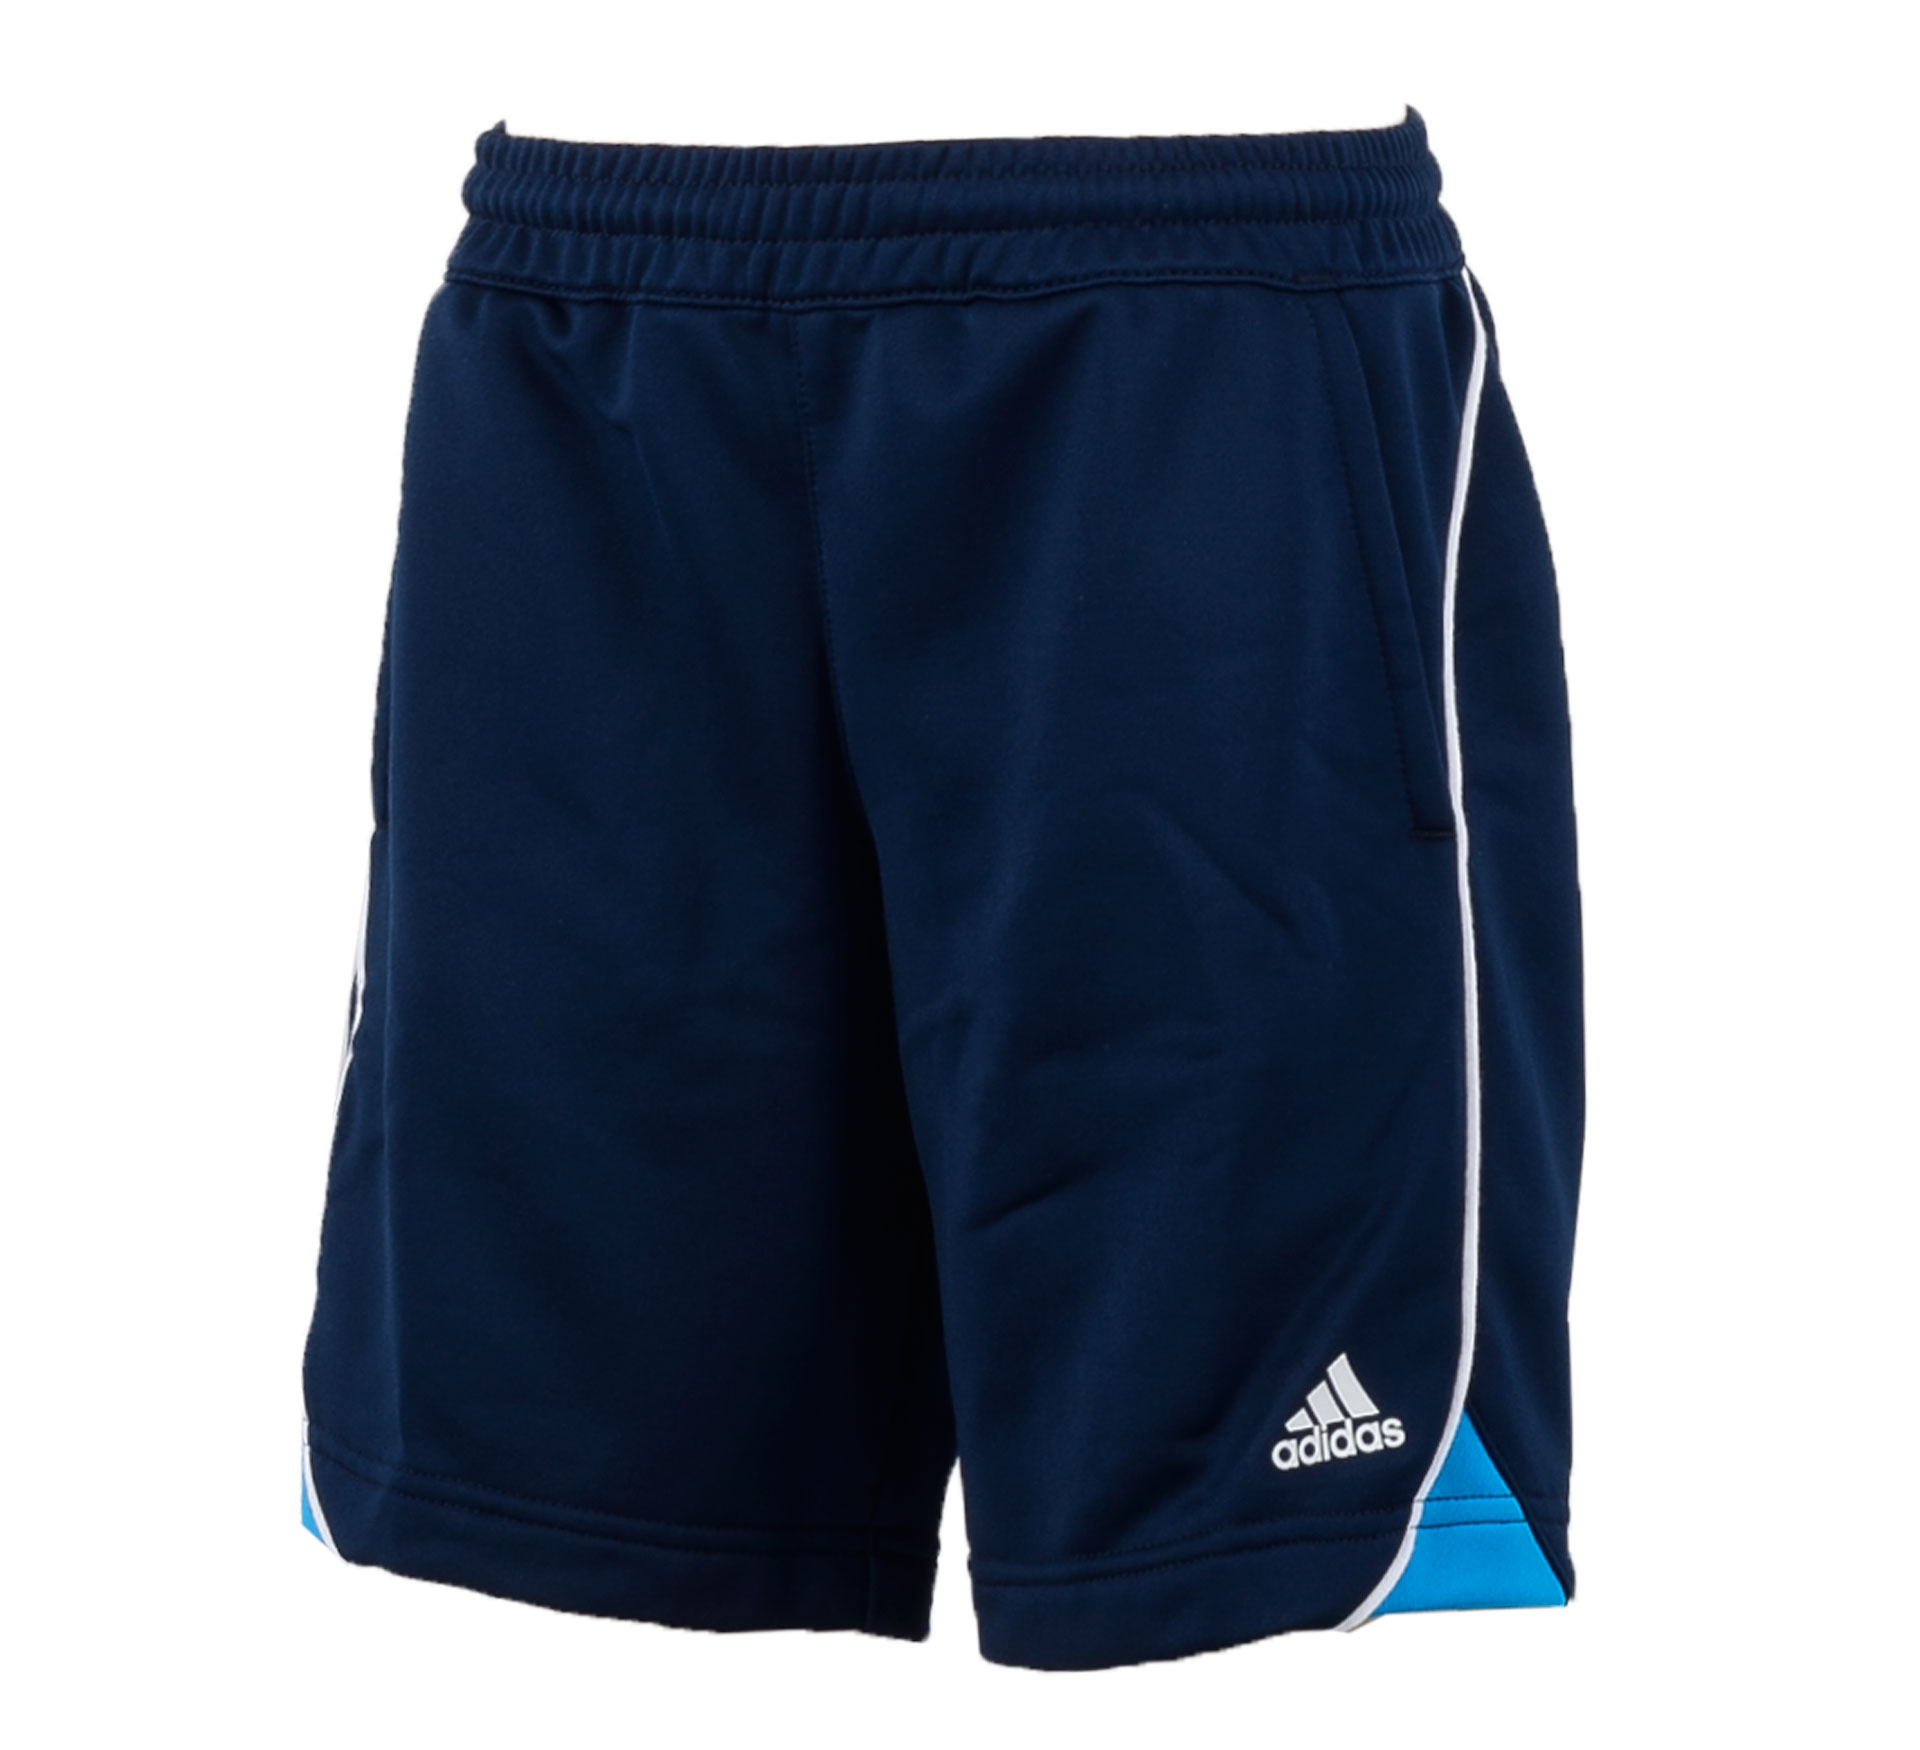 Adidas  Prime Short Junior navy - blauw - wit